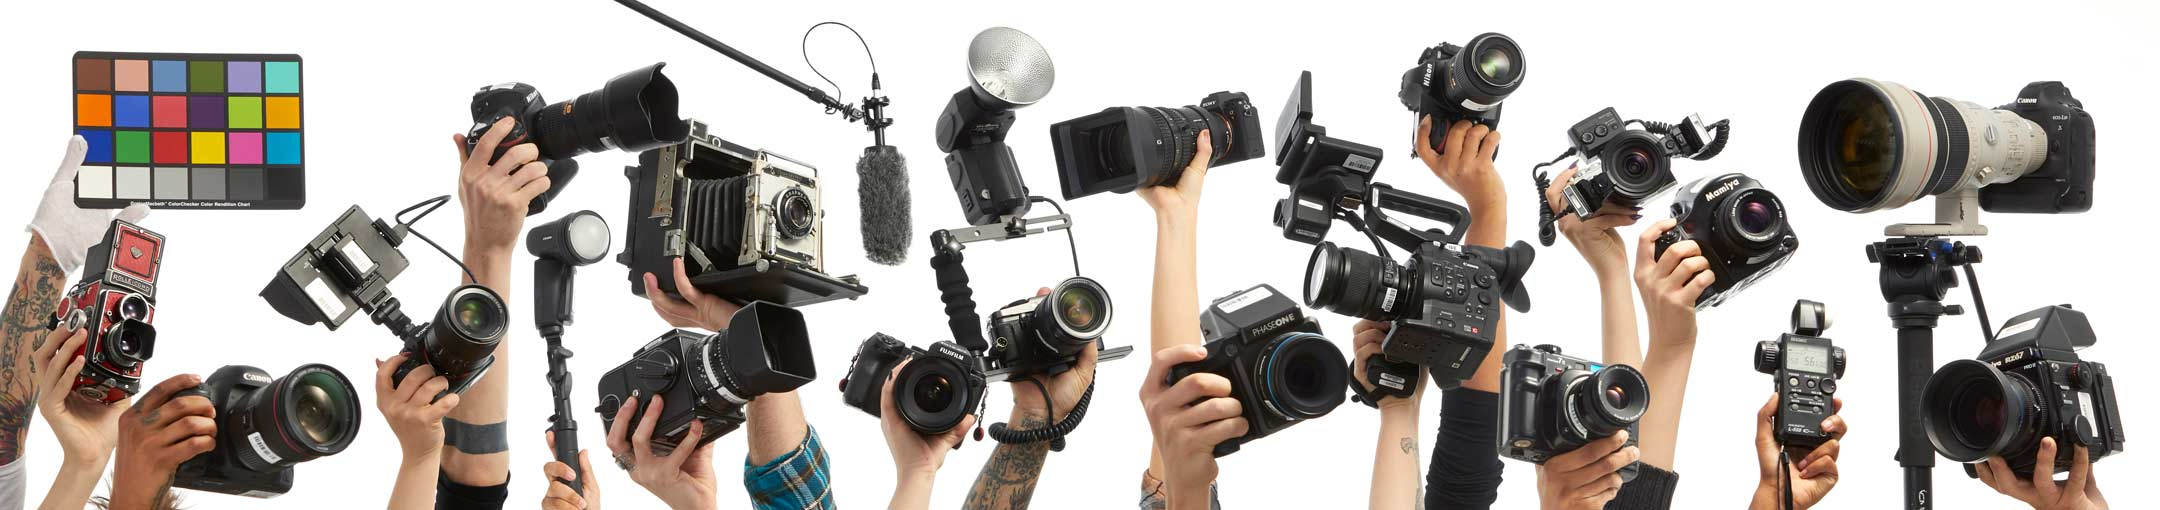 Different cameras being held up by people's hands on a white background